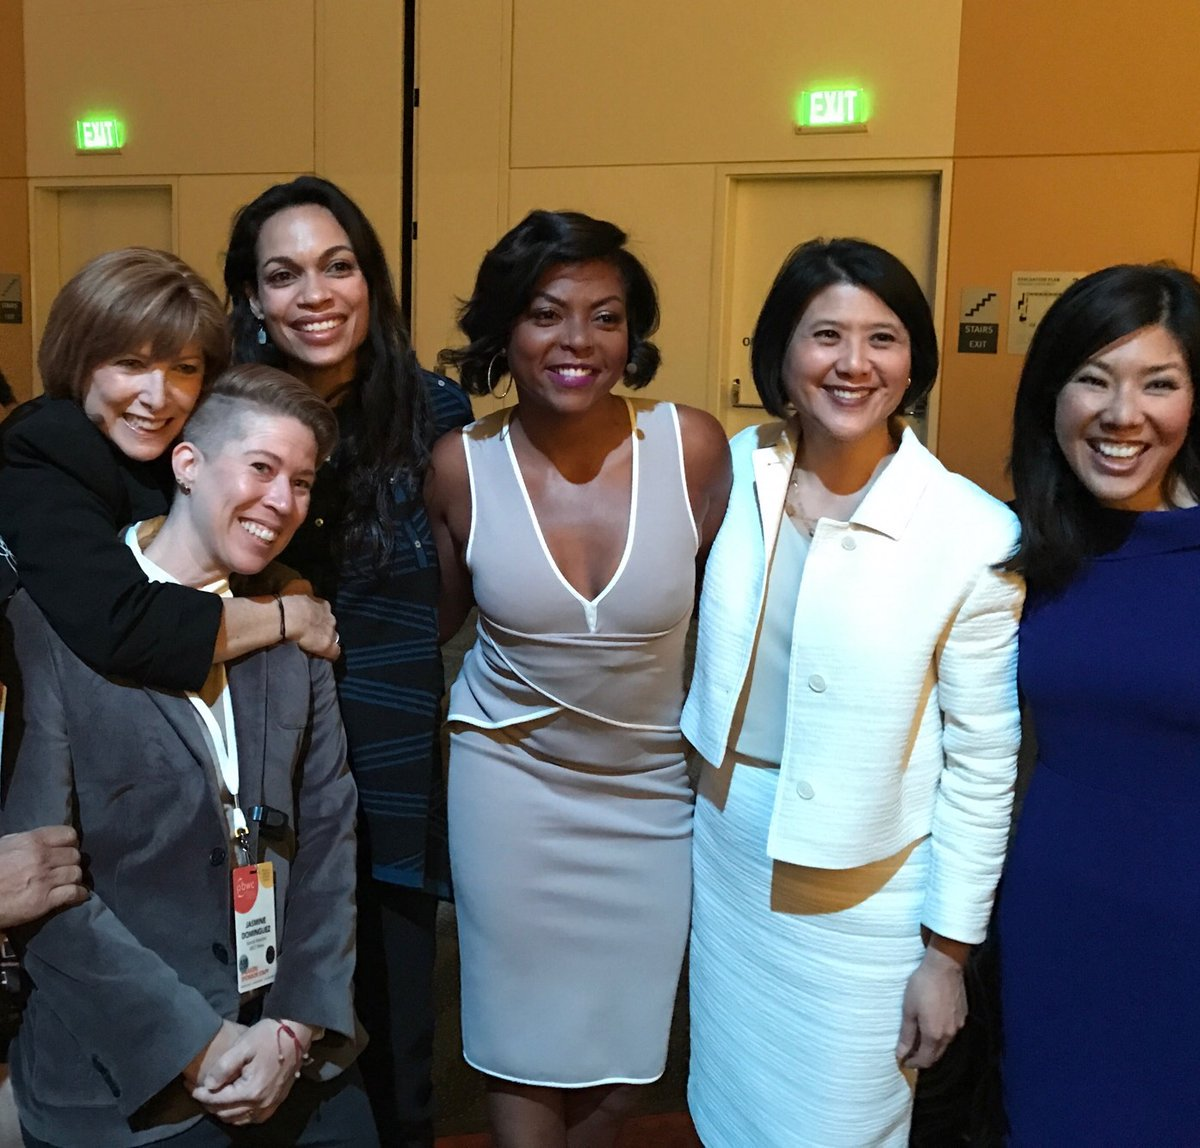 "<div class=""meta image-caption""><div class=""origin-logo origin-image none""><span>none</span></div><span class=""caption-text"">Attendees including Taraji P. Henson, Rosario Dawson, and Kristen Sze pose at the Professional BusinessWomen of California Conference in San Francisco on March, 28, 2017. (KGO-TV)</span></div>"